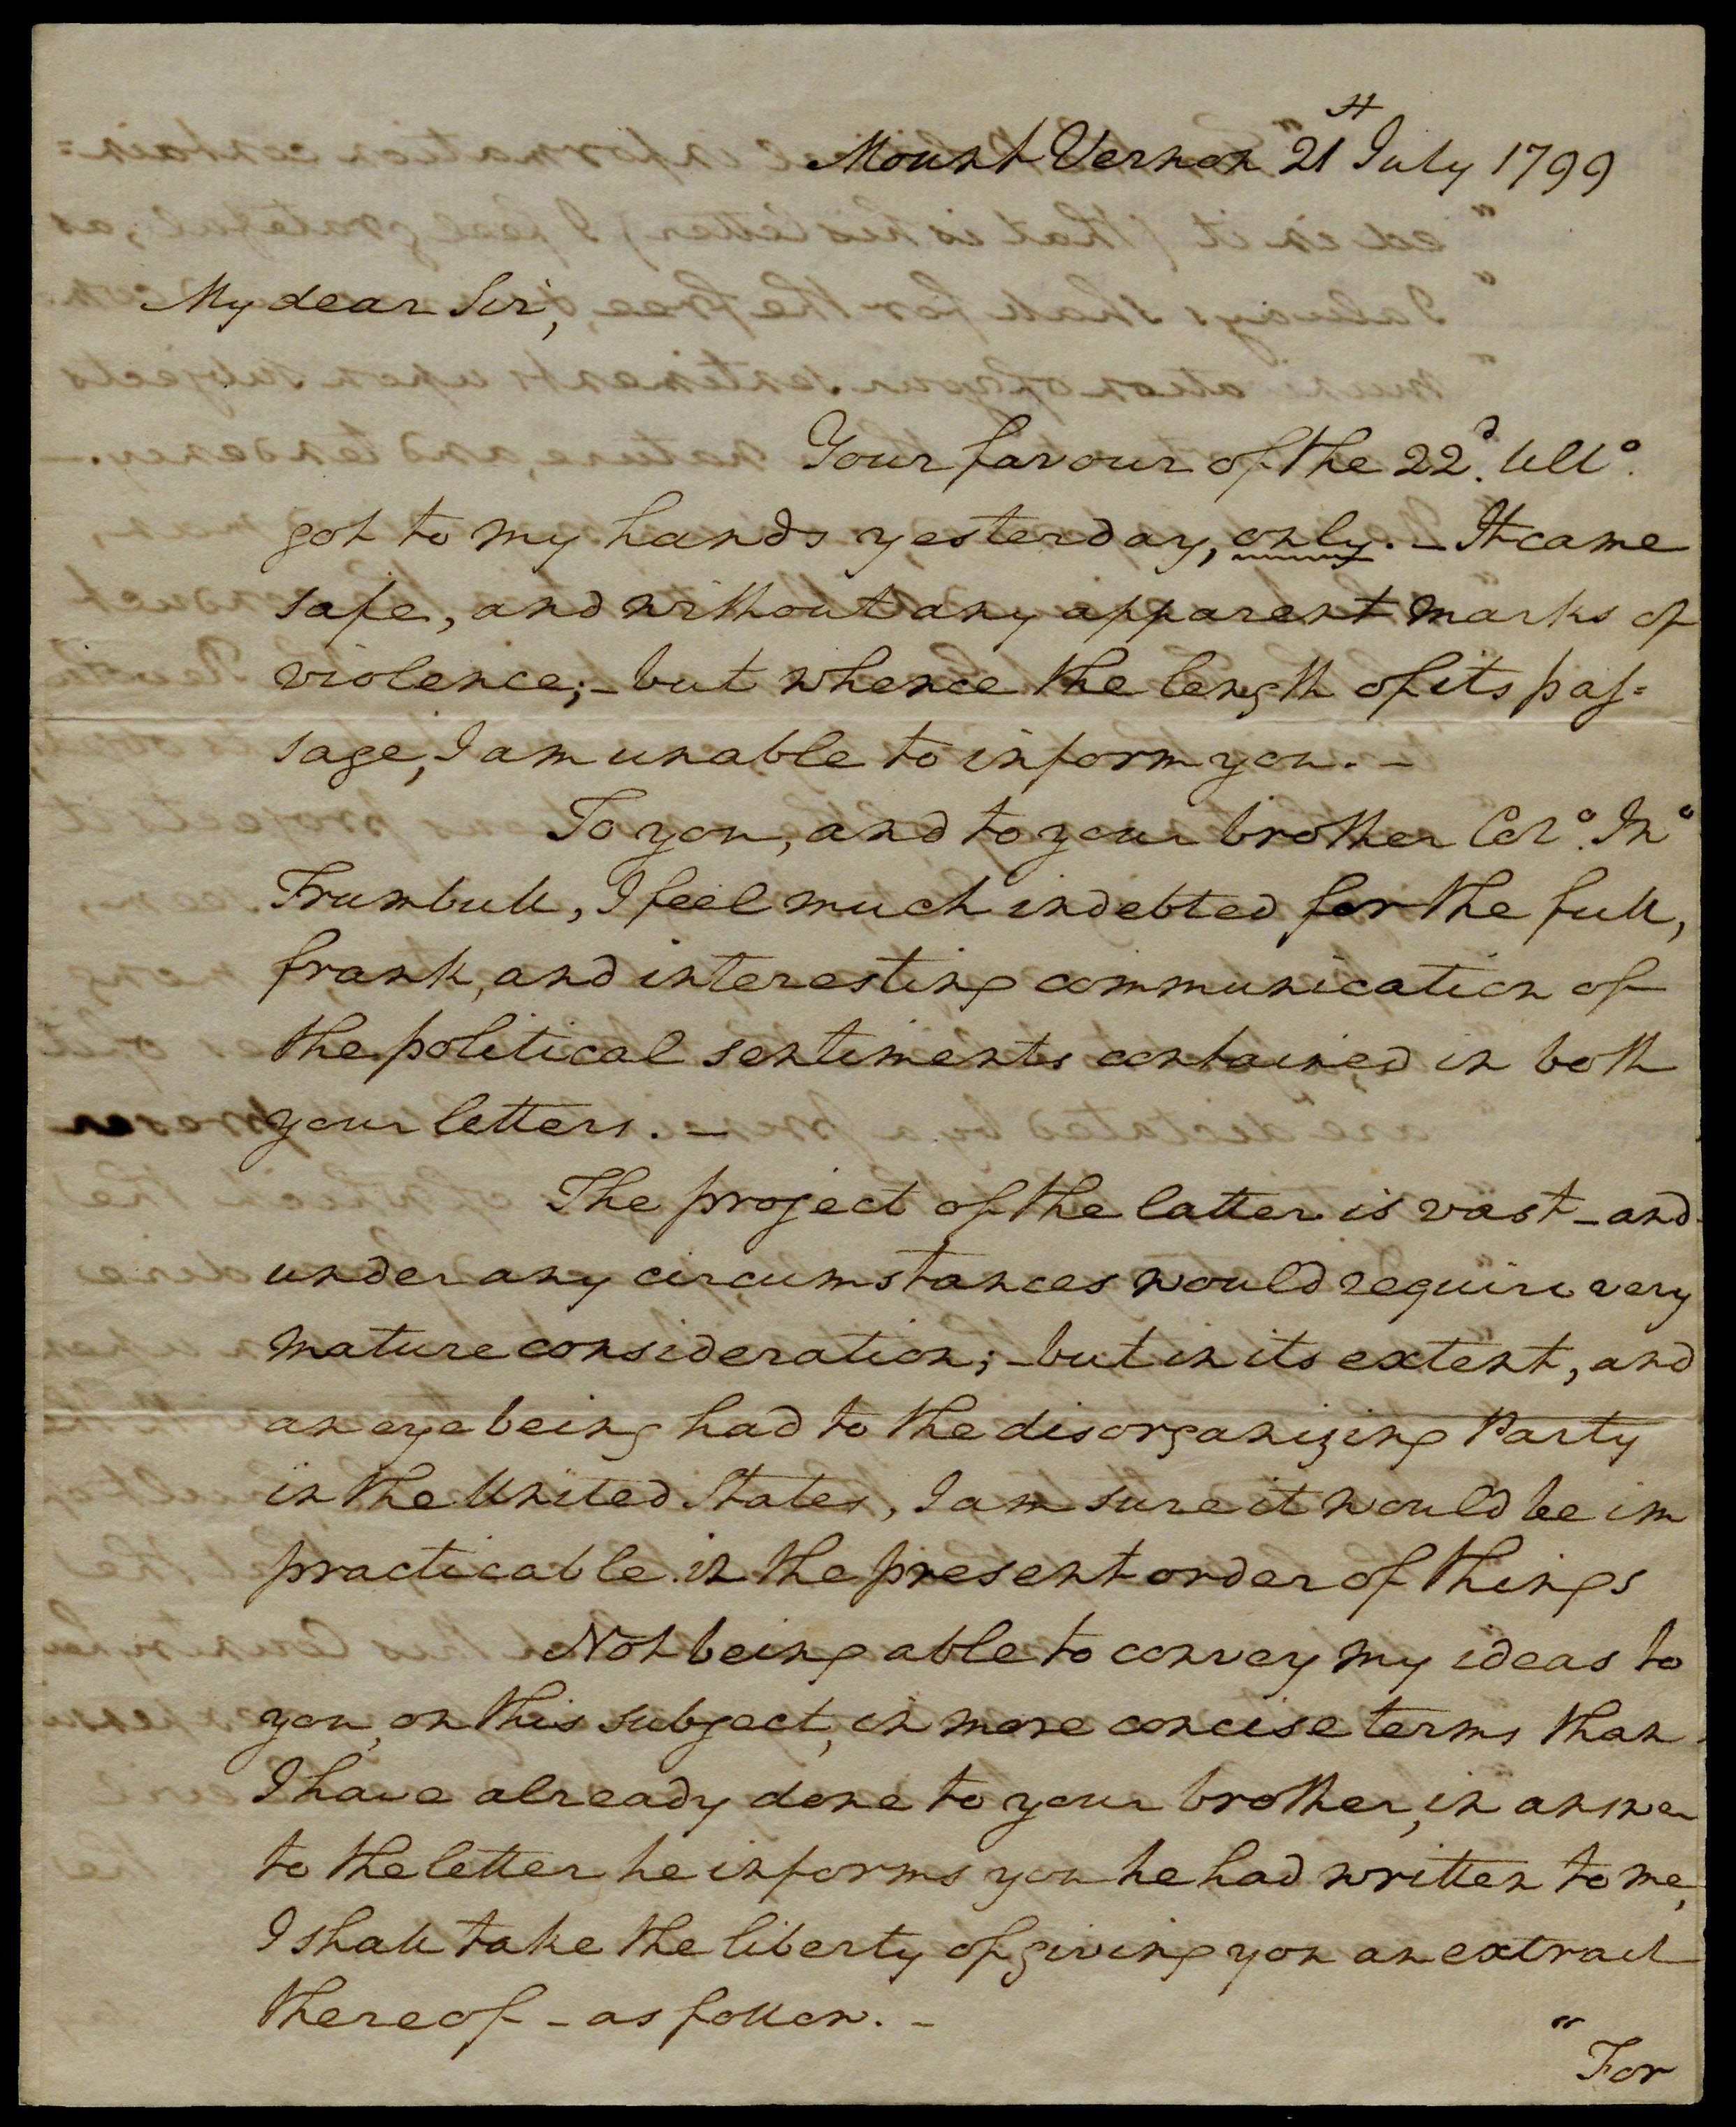 George Washington to Jonathan Trumbull, 1799. (Gilder Lehrman Collection)